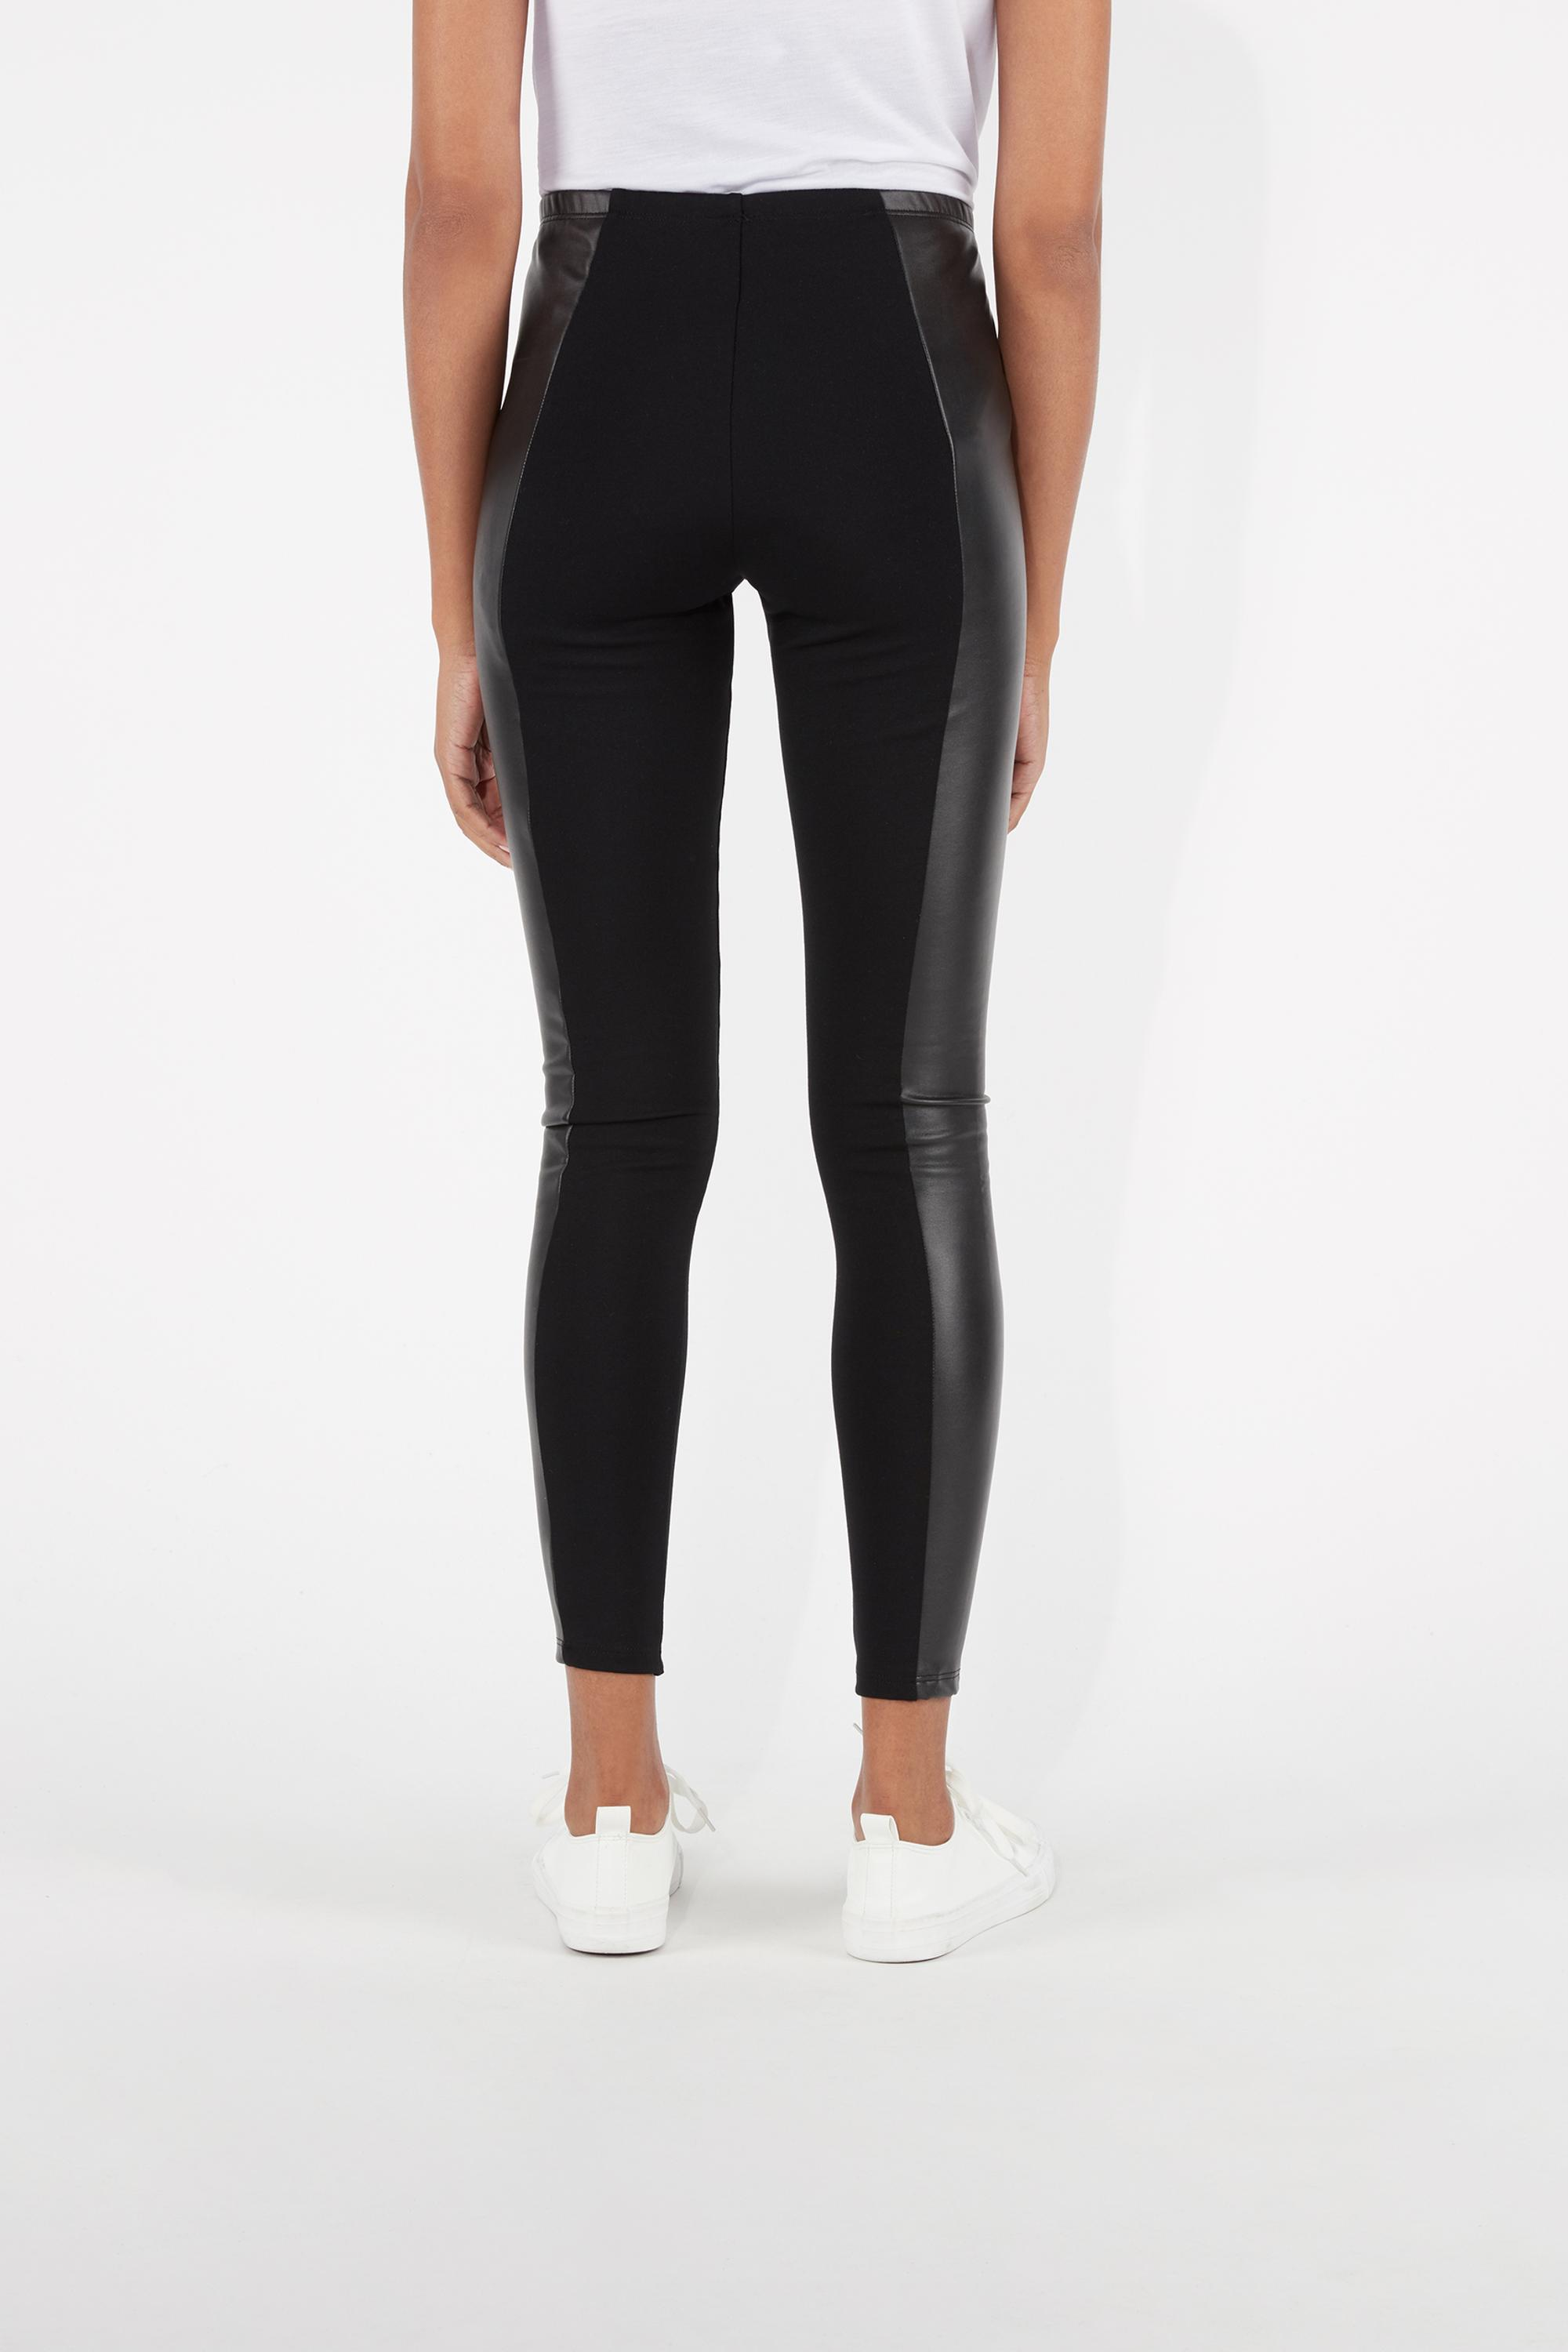 e95922fe2d4565 Thermal Leatherette Milan-Stitch Leggings - Tezenis